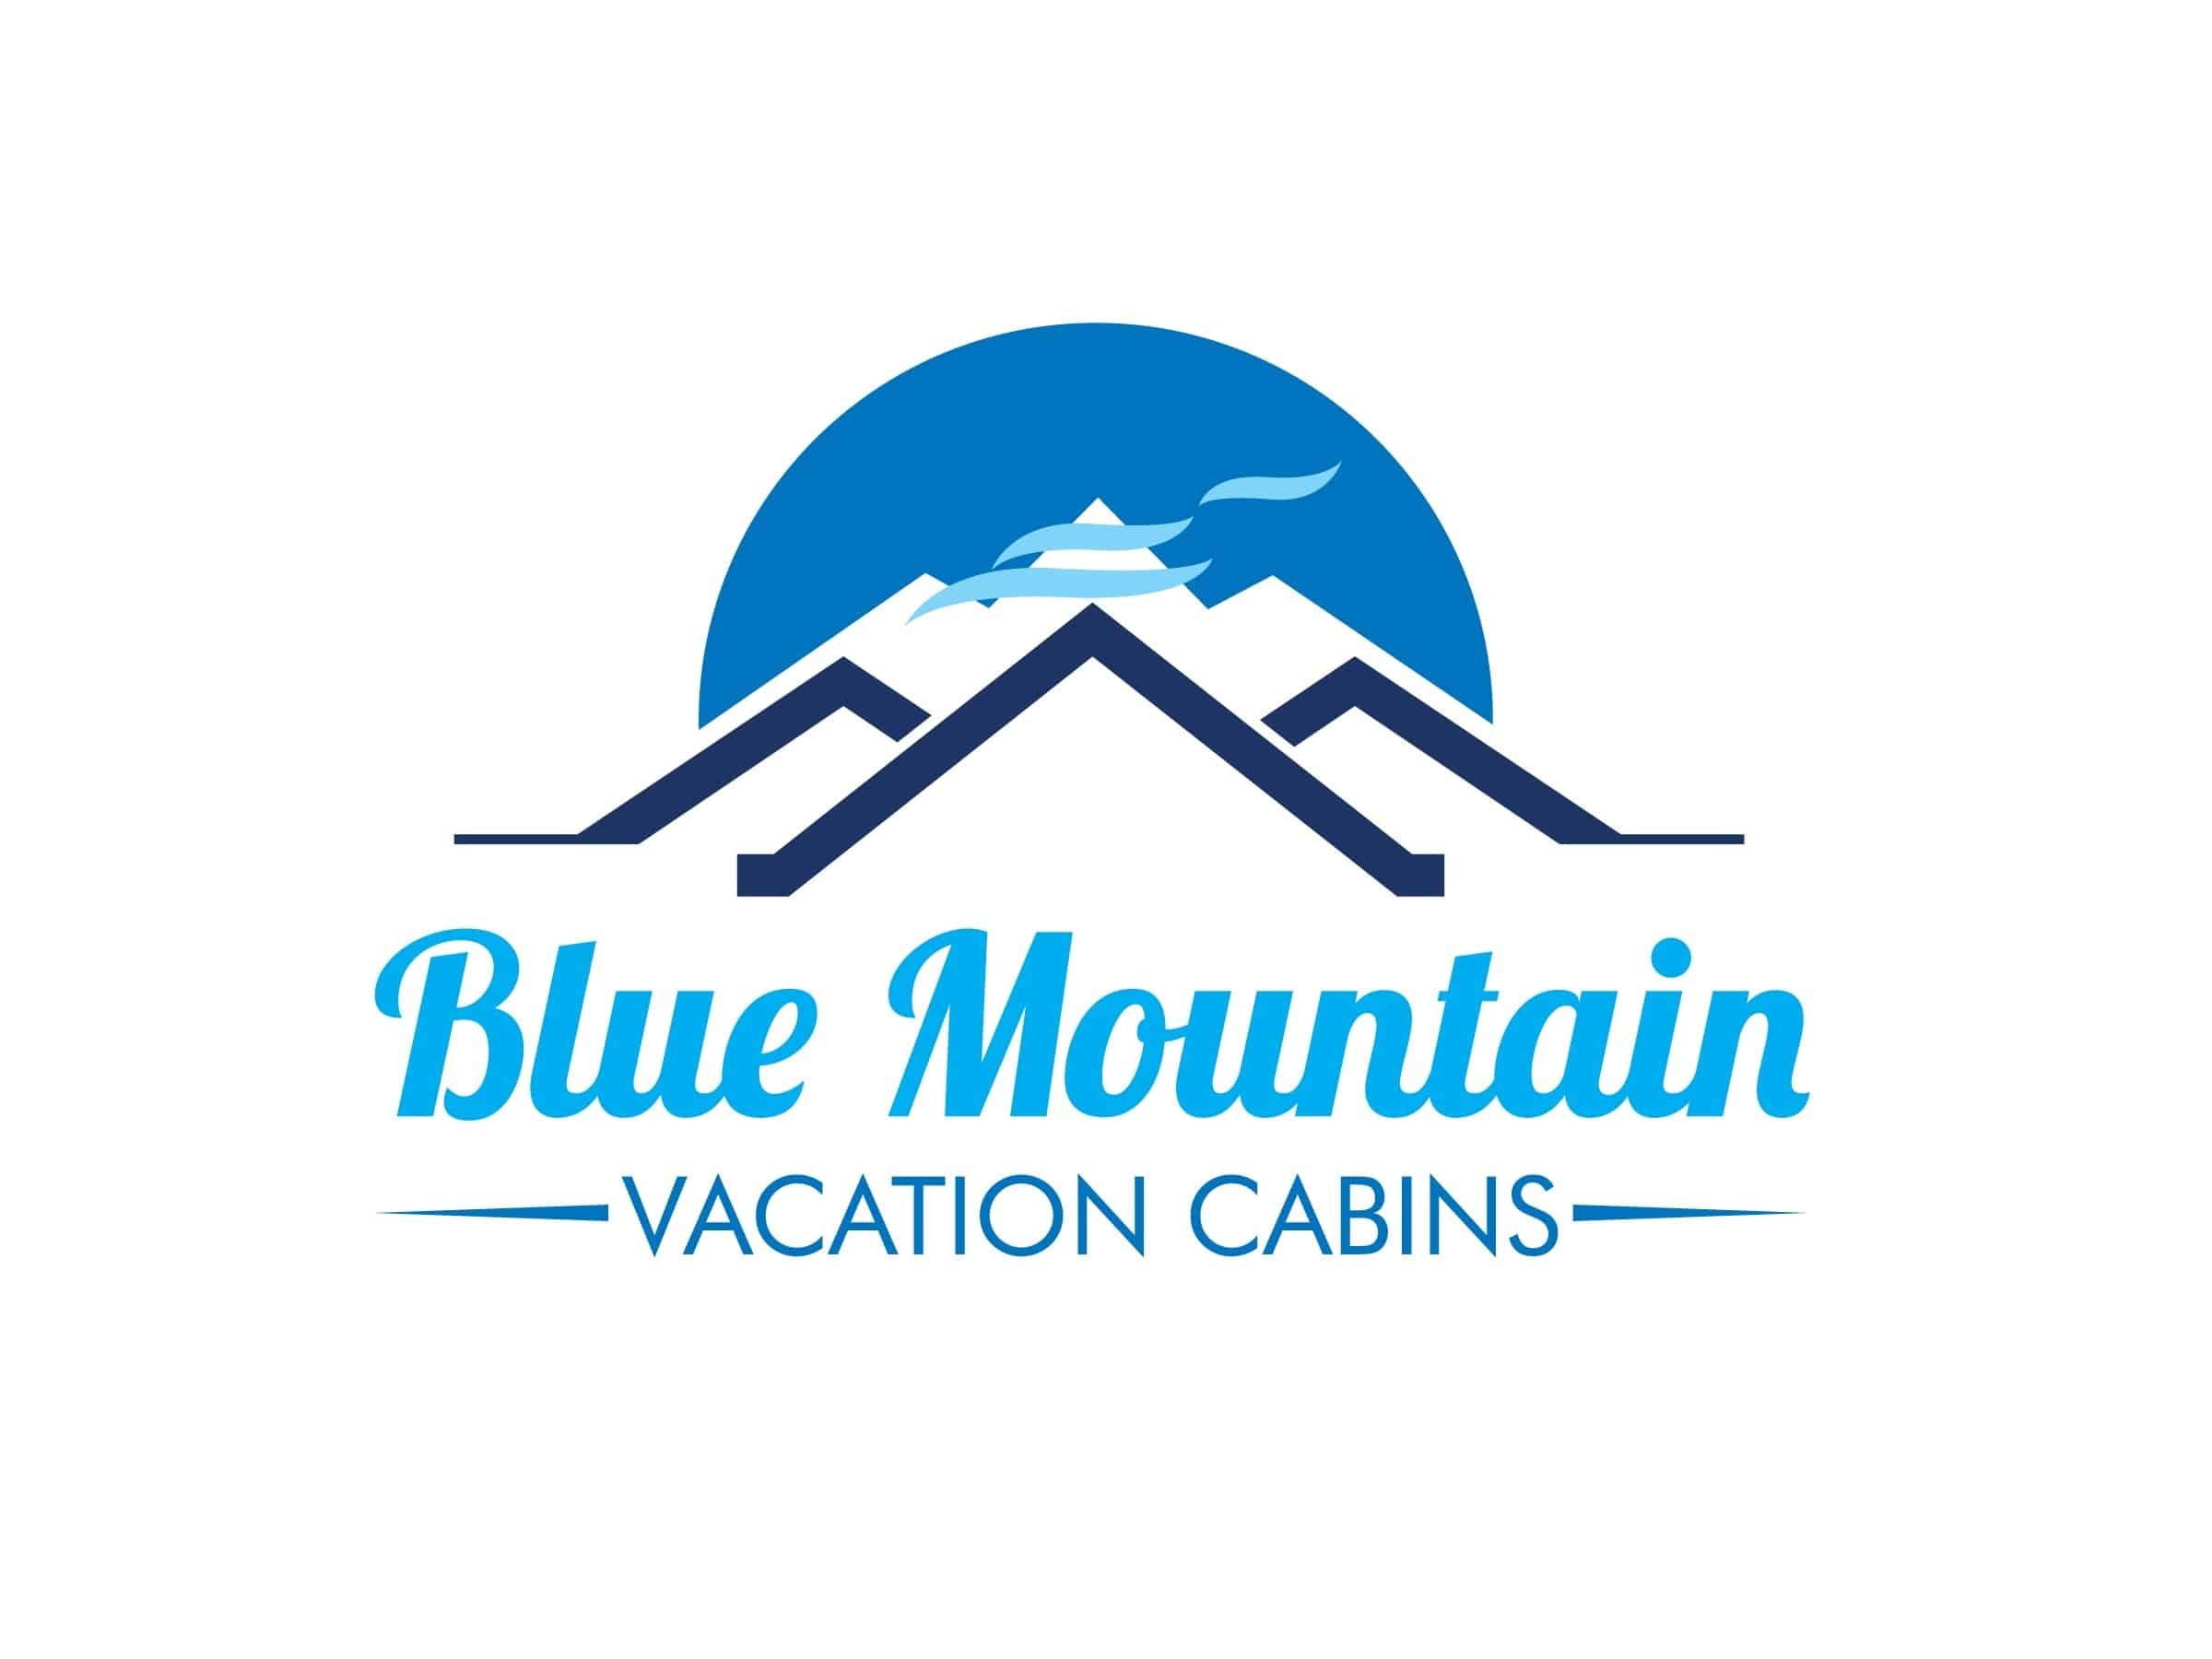 Blue Mountain Vacation Cabins